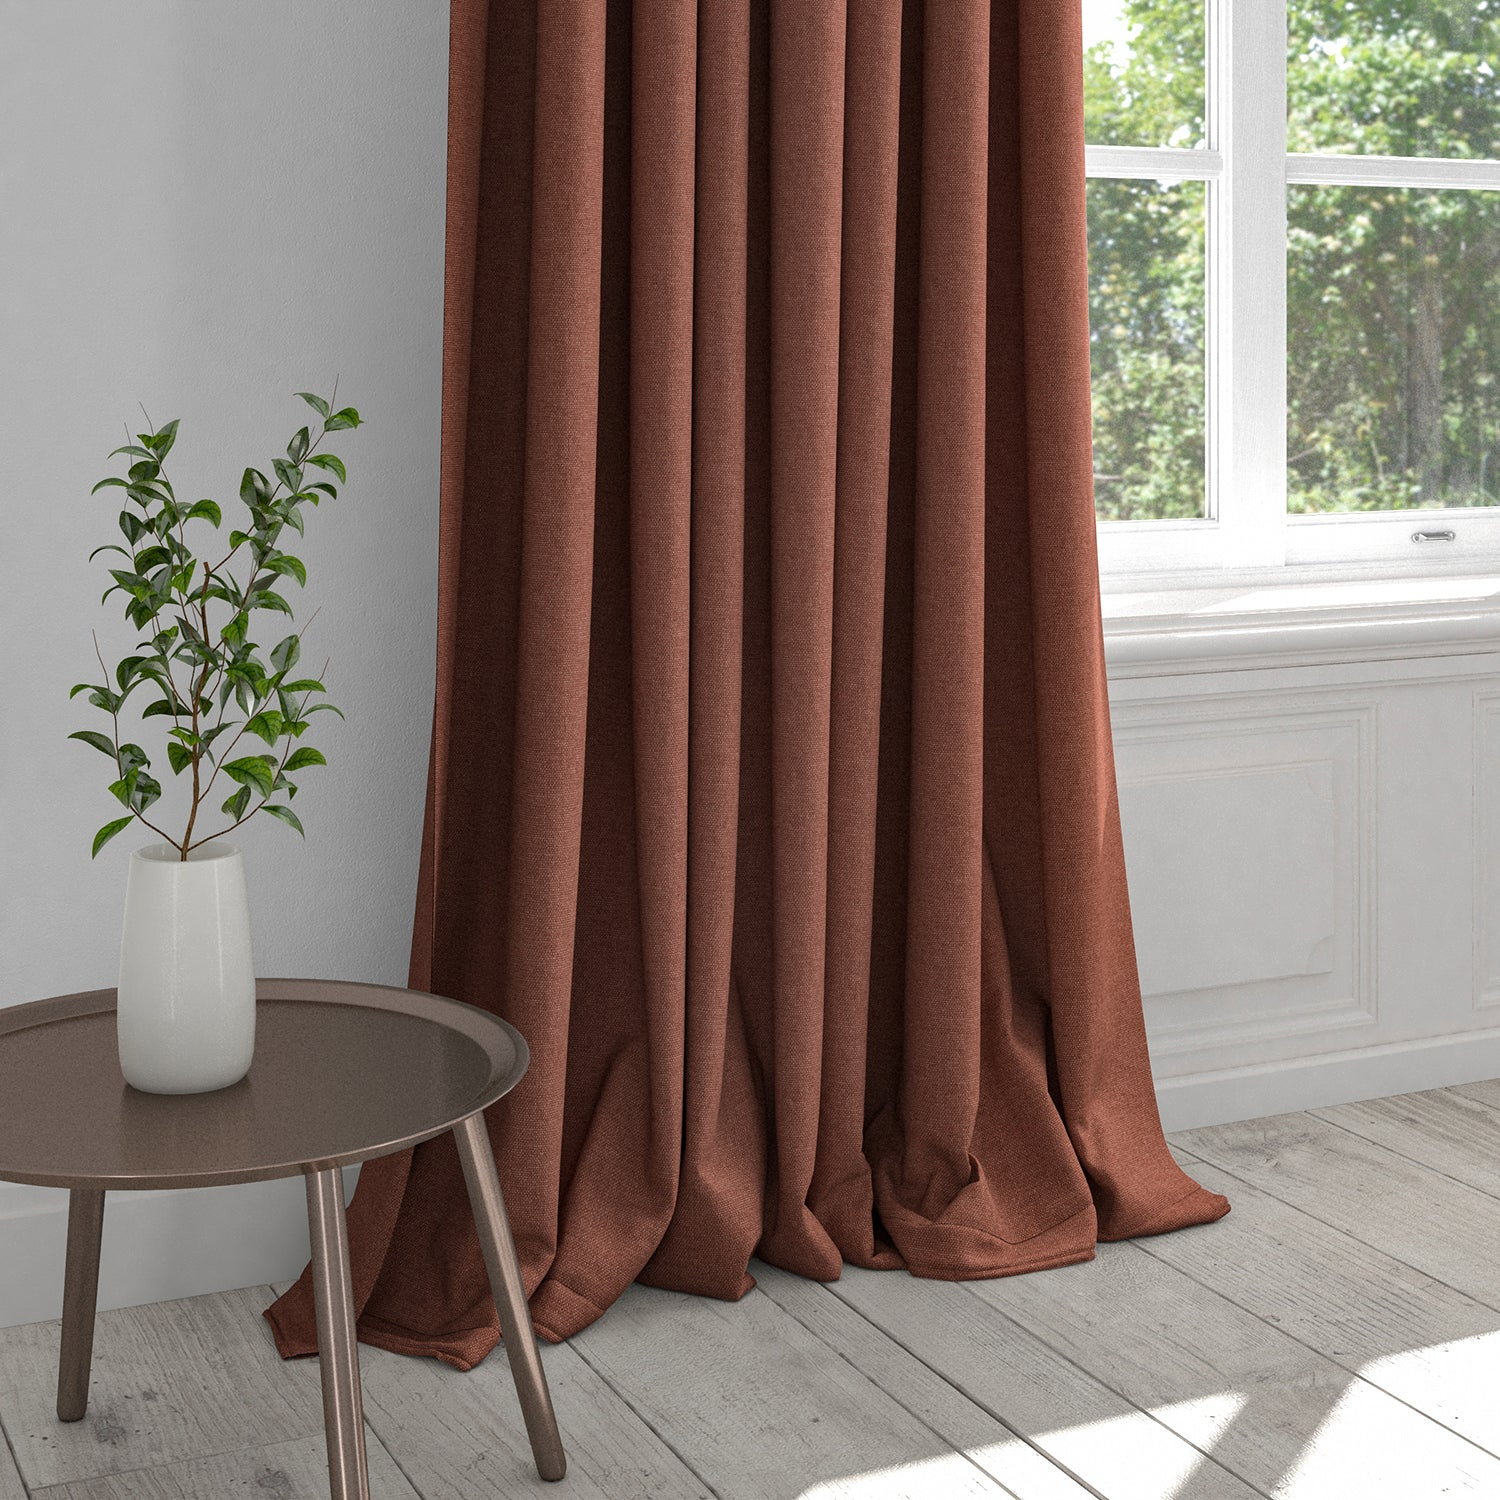 Curtain in a brick red washable plain cotton fabric